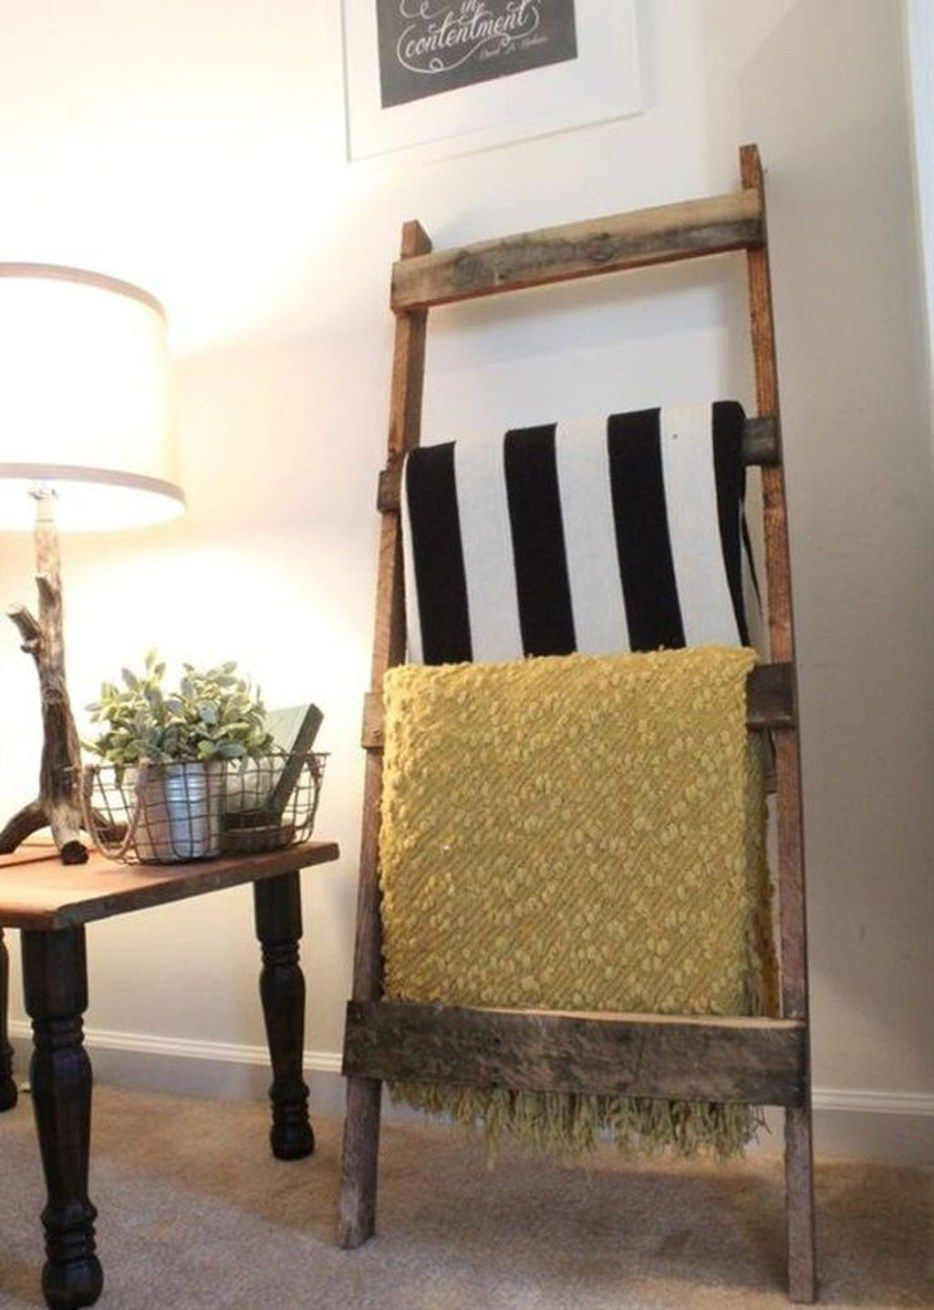 Incredible Used Wood Project Ideas 13 Diy pallet